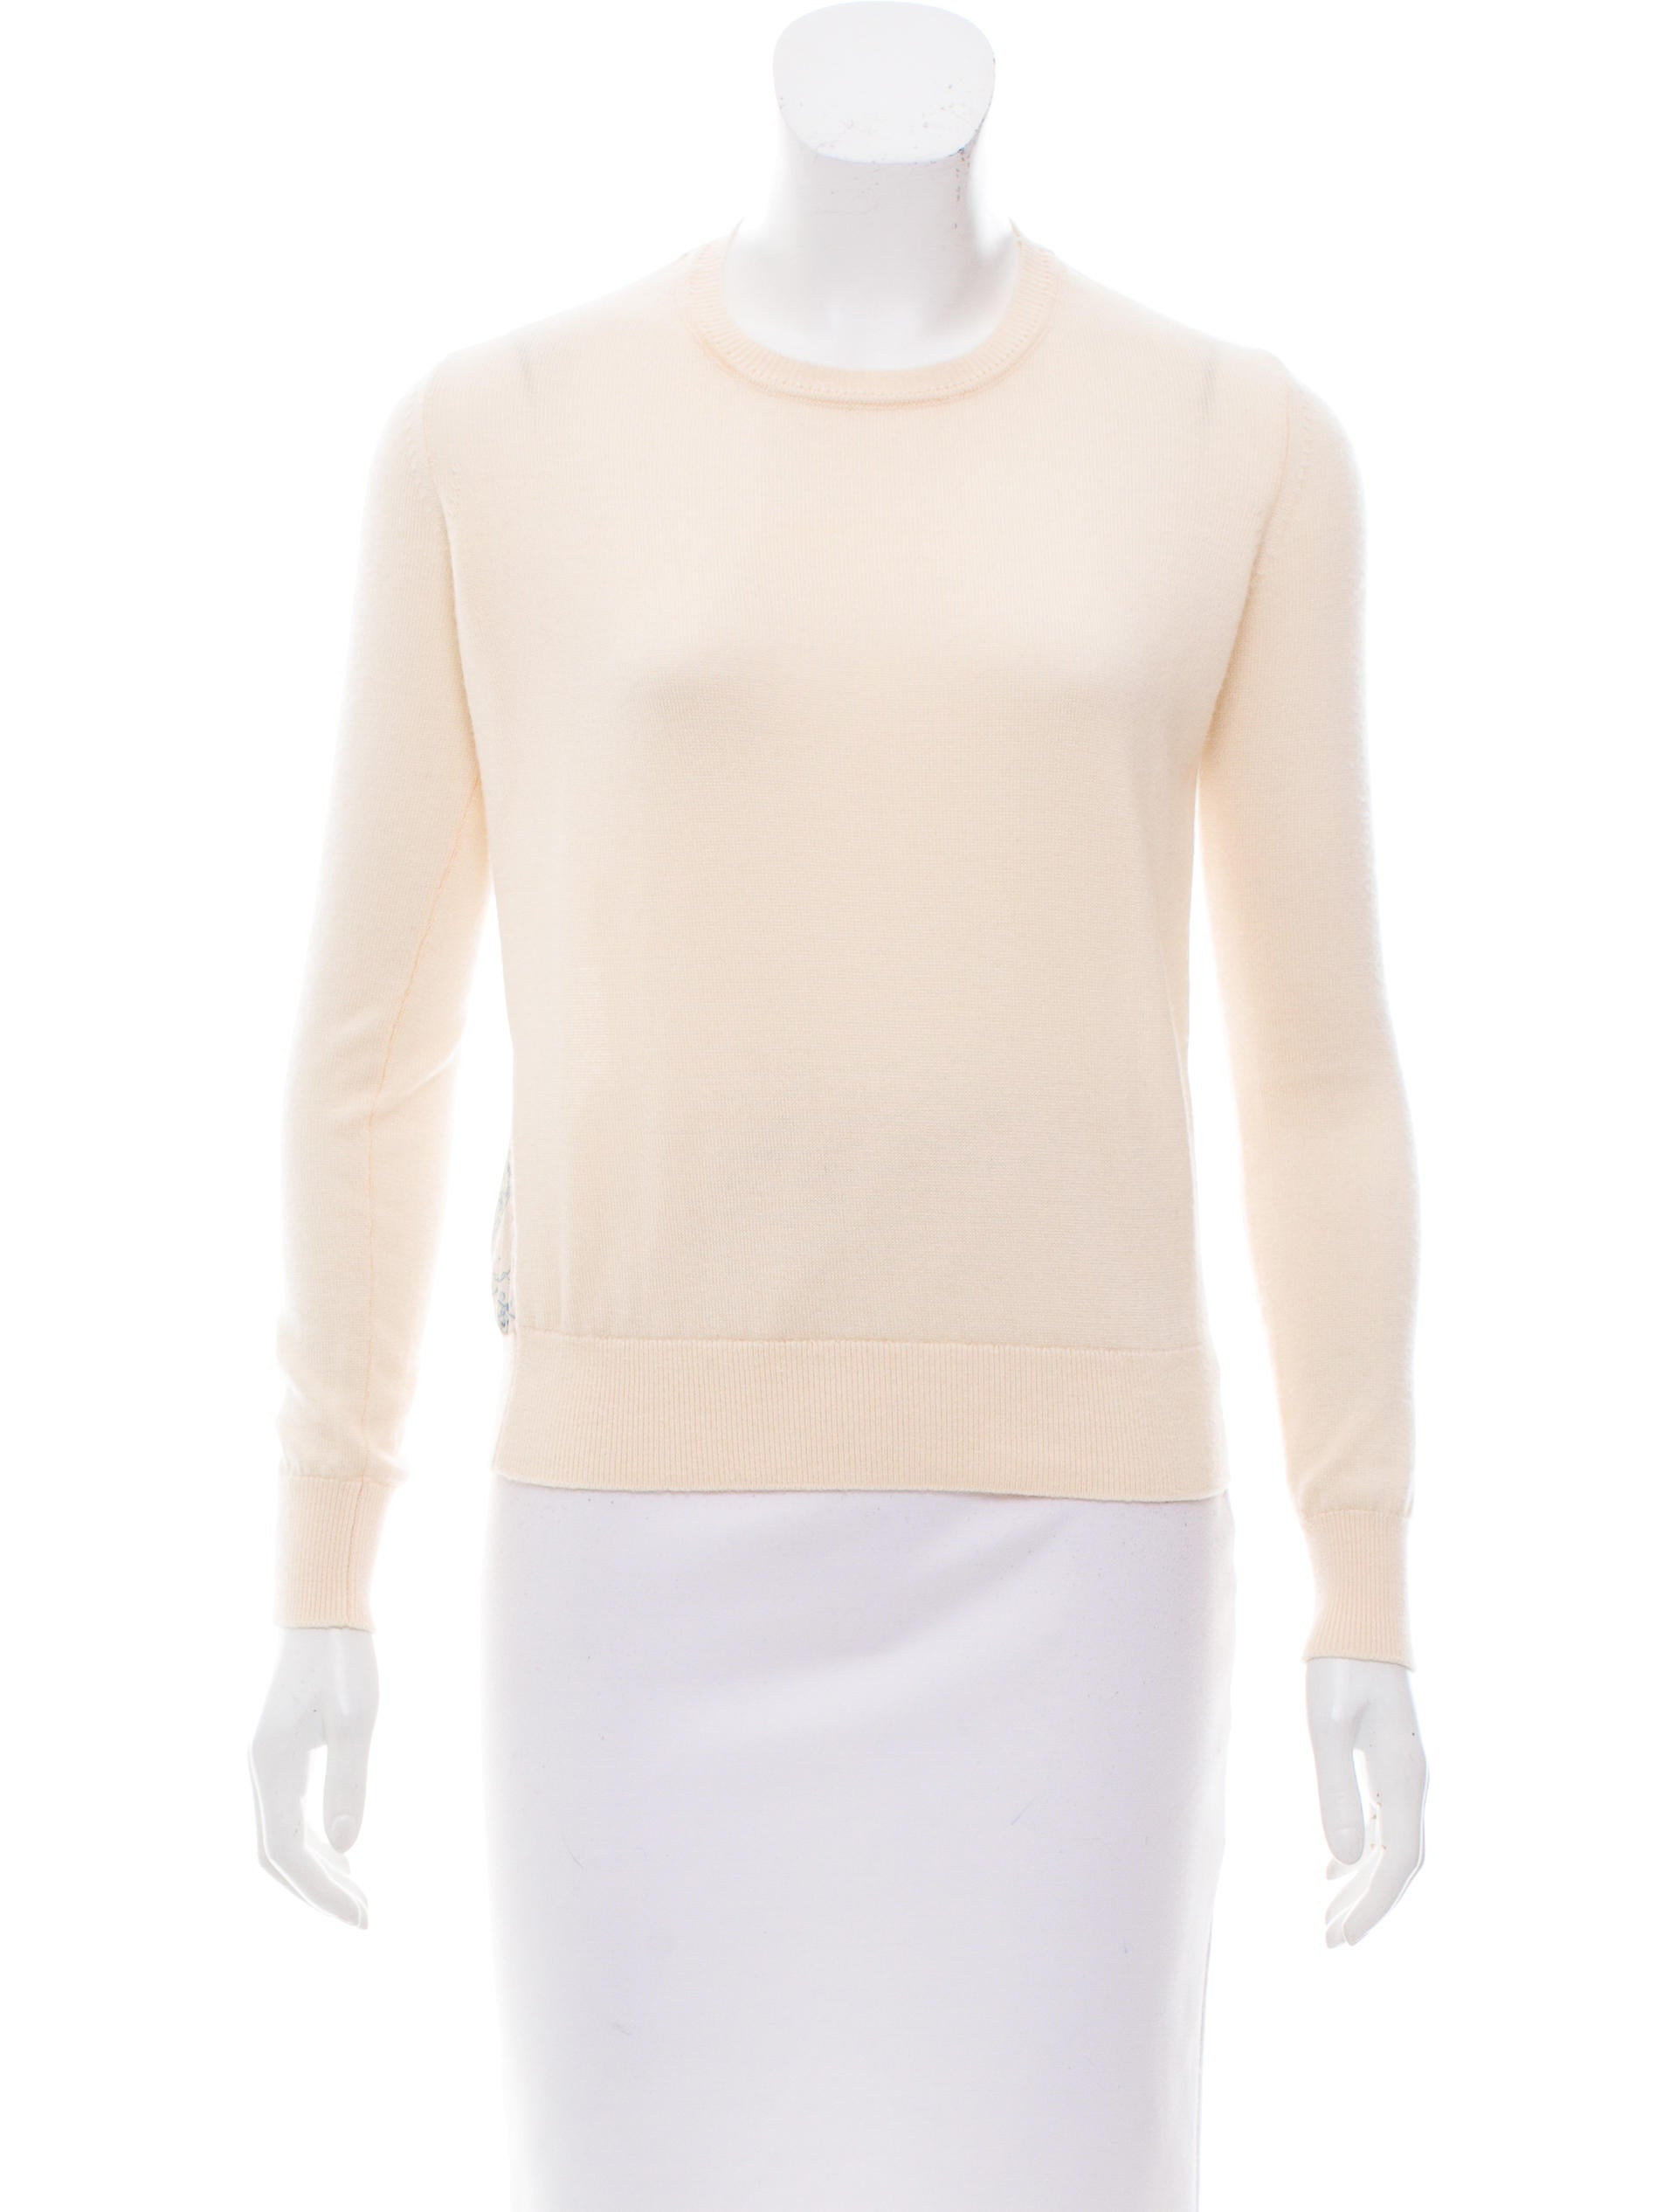 The Row Cashmere Sweater Set - Clothing - THR34641 | The RealReal